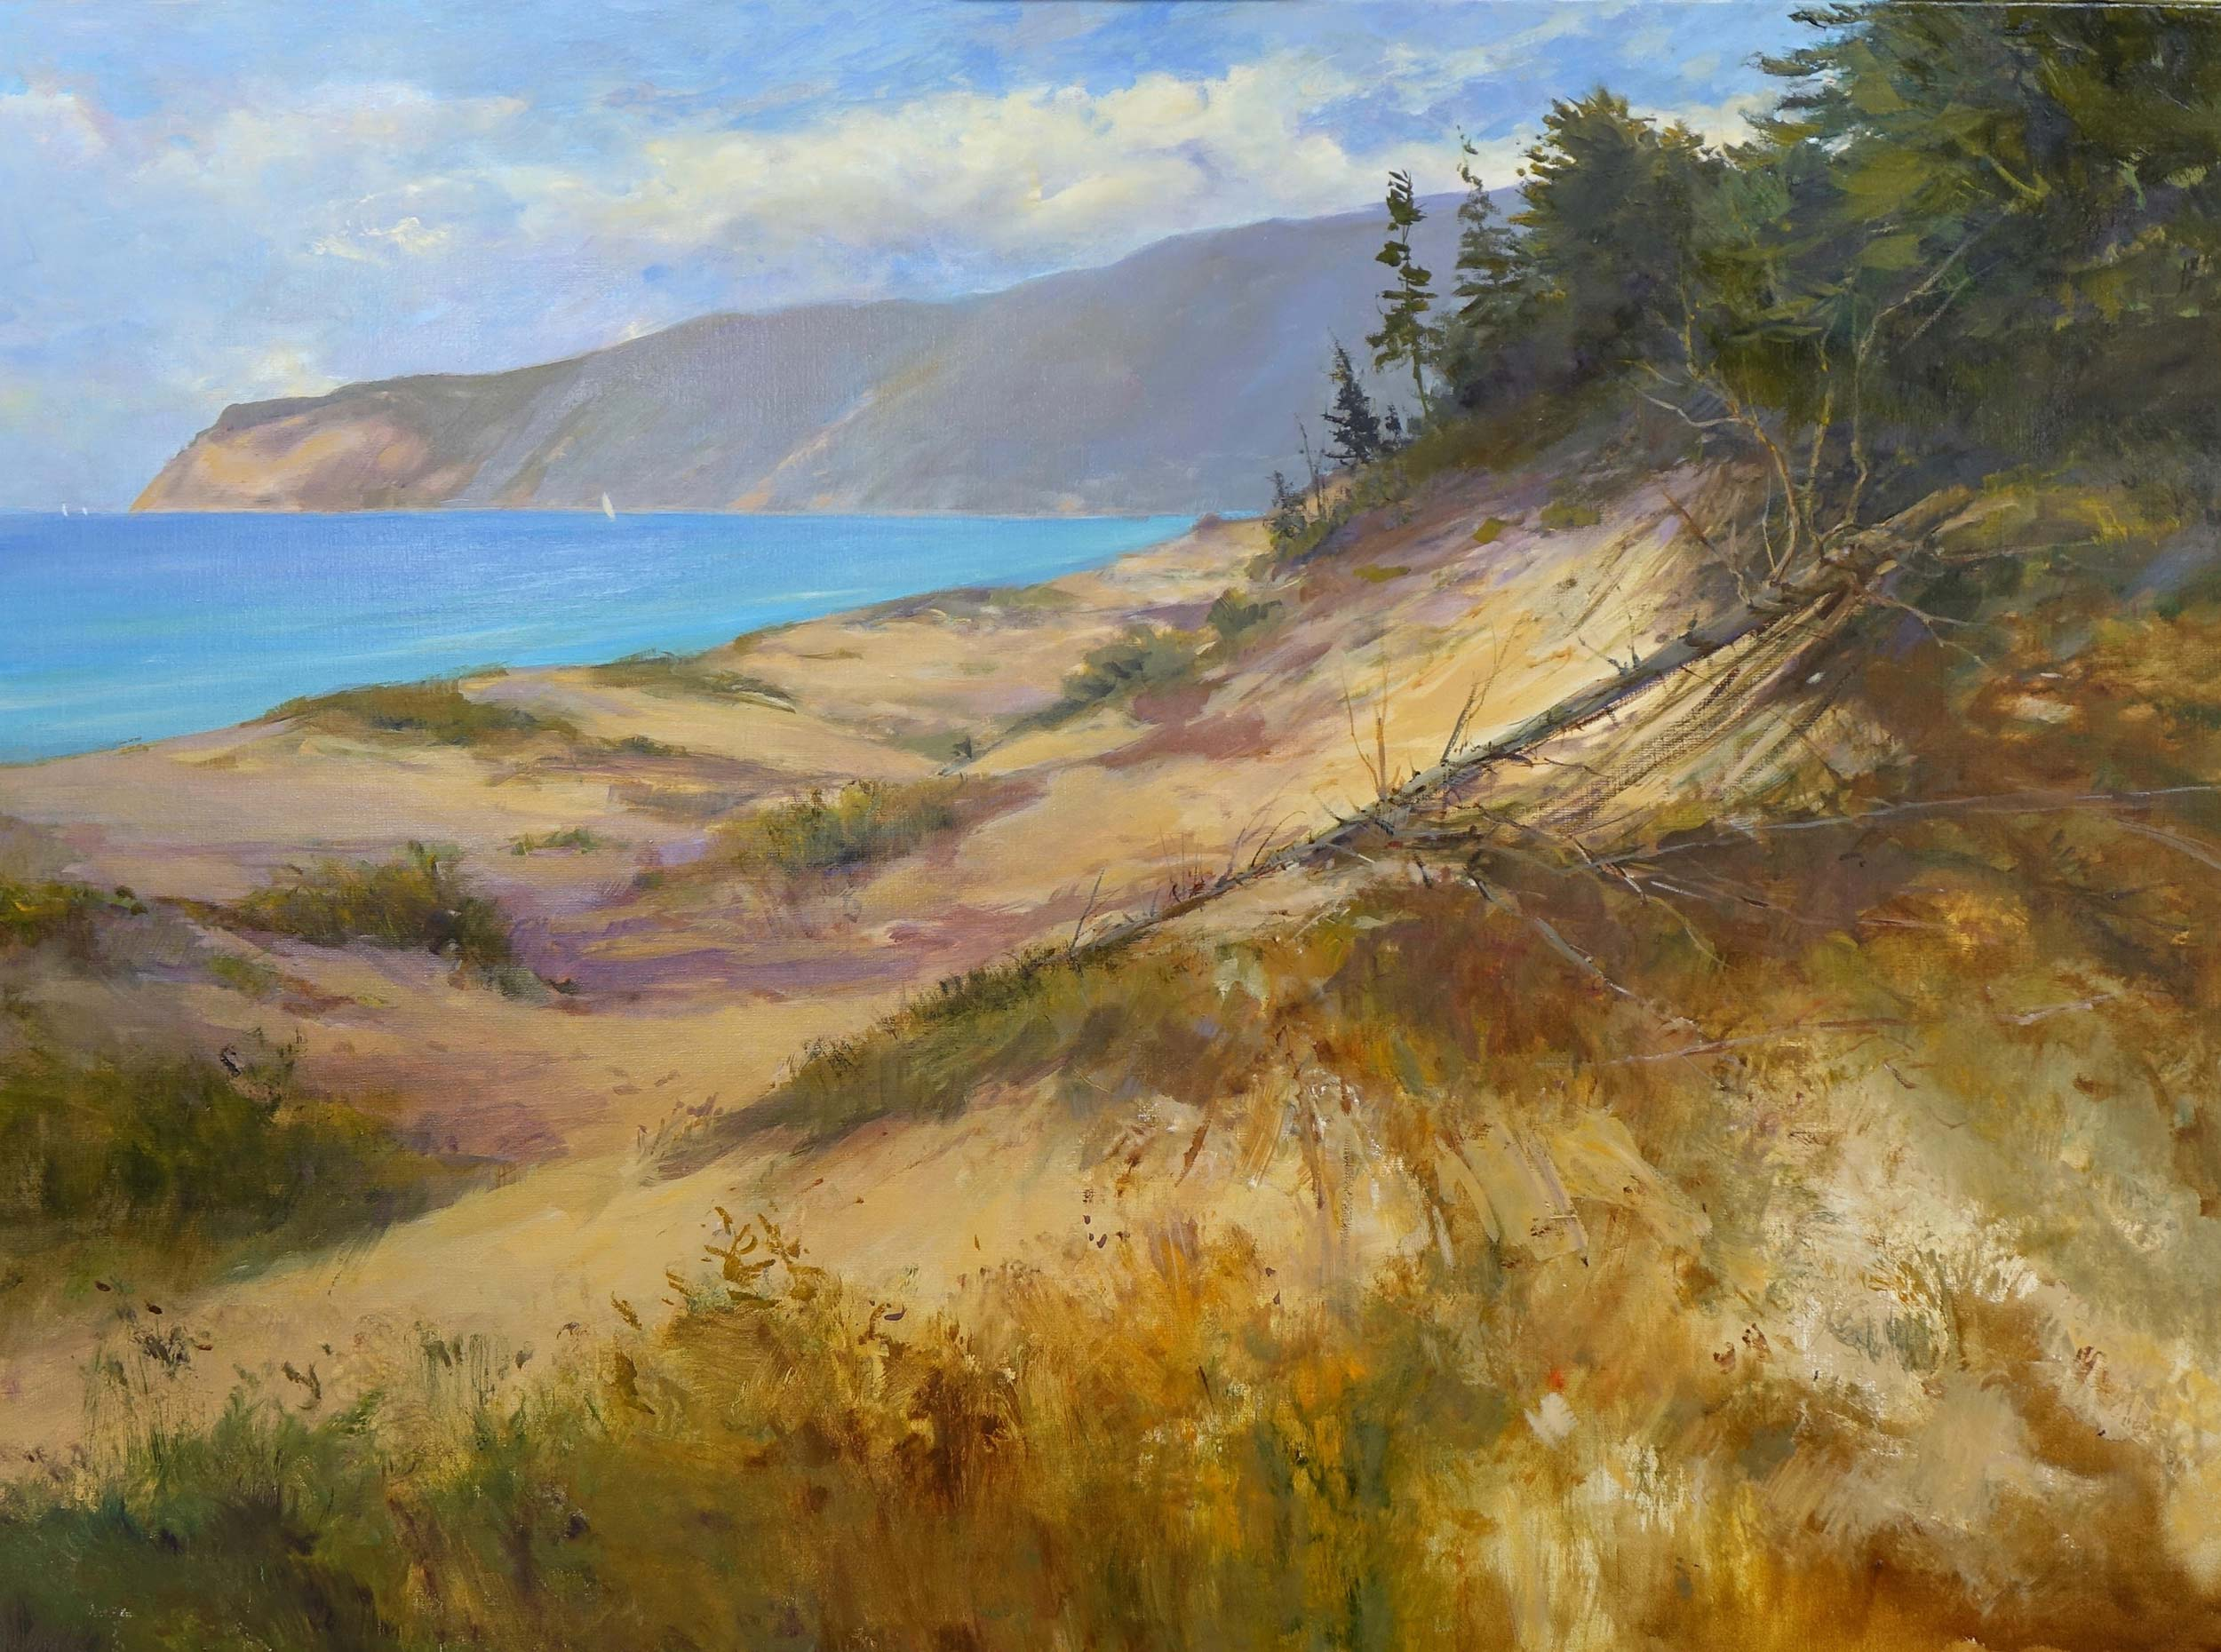 Empire Bluffs 30 x 40 Oil On Canvas - S O L D  (GICLEE AVAILABLE)